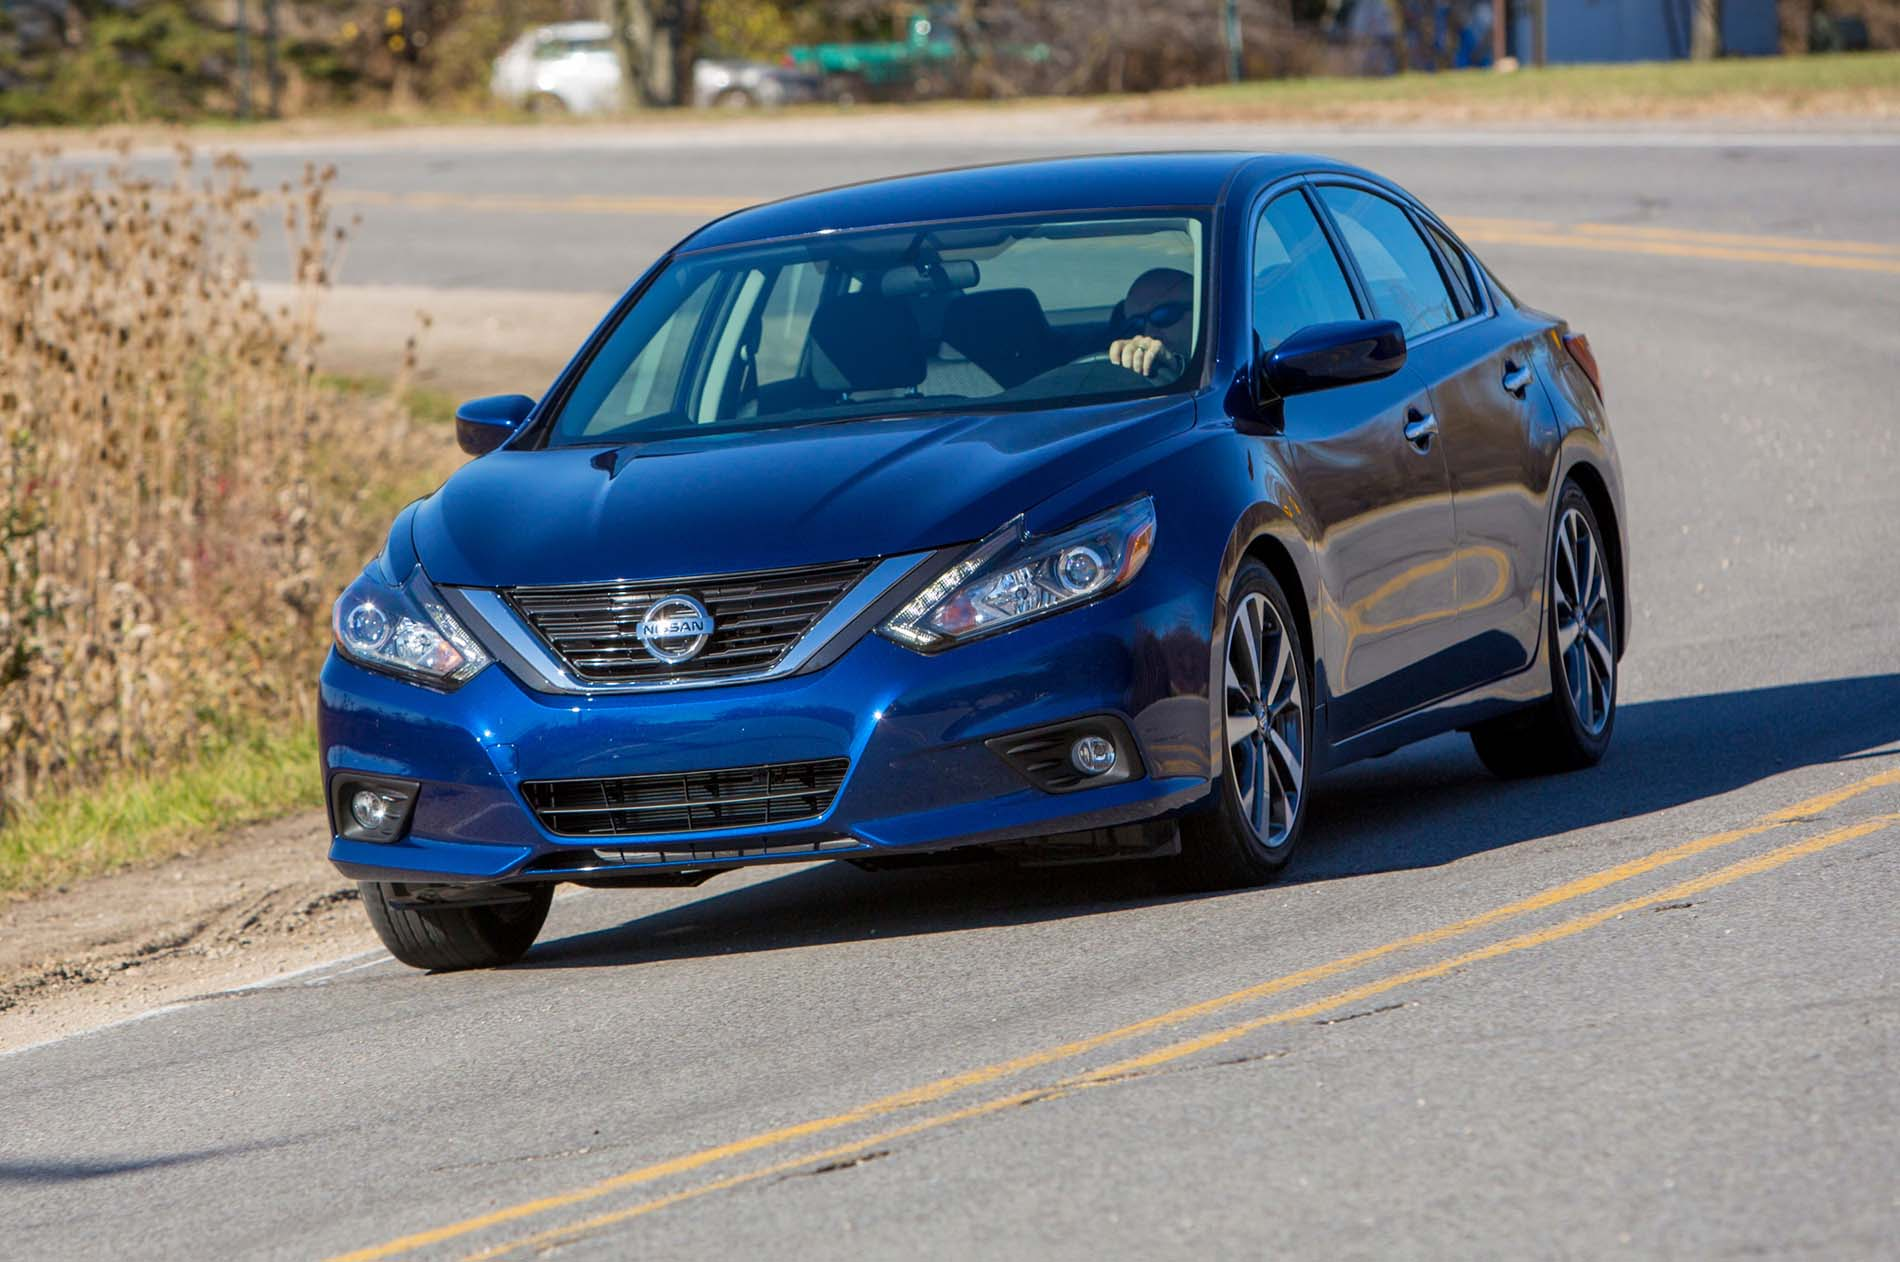 2017 Nissan Altima 0-60 speed acceleration review